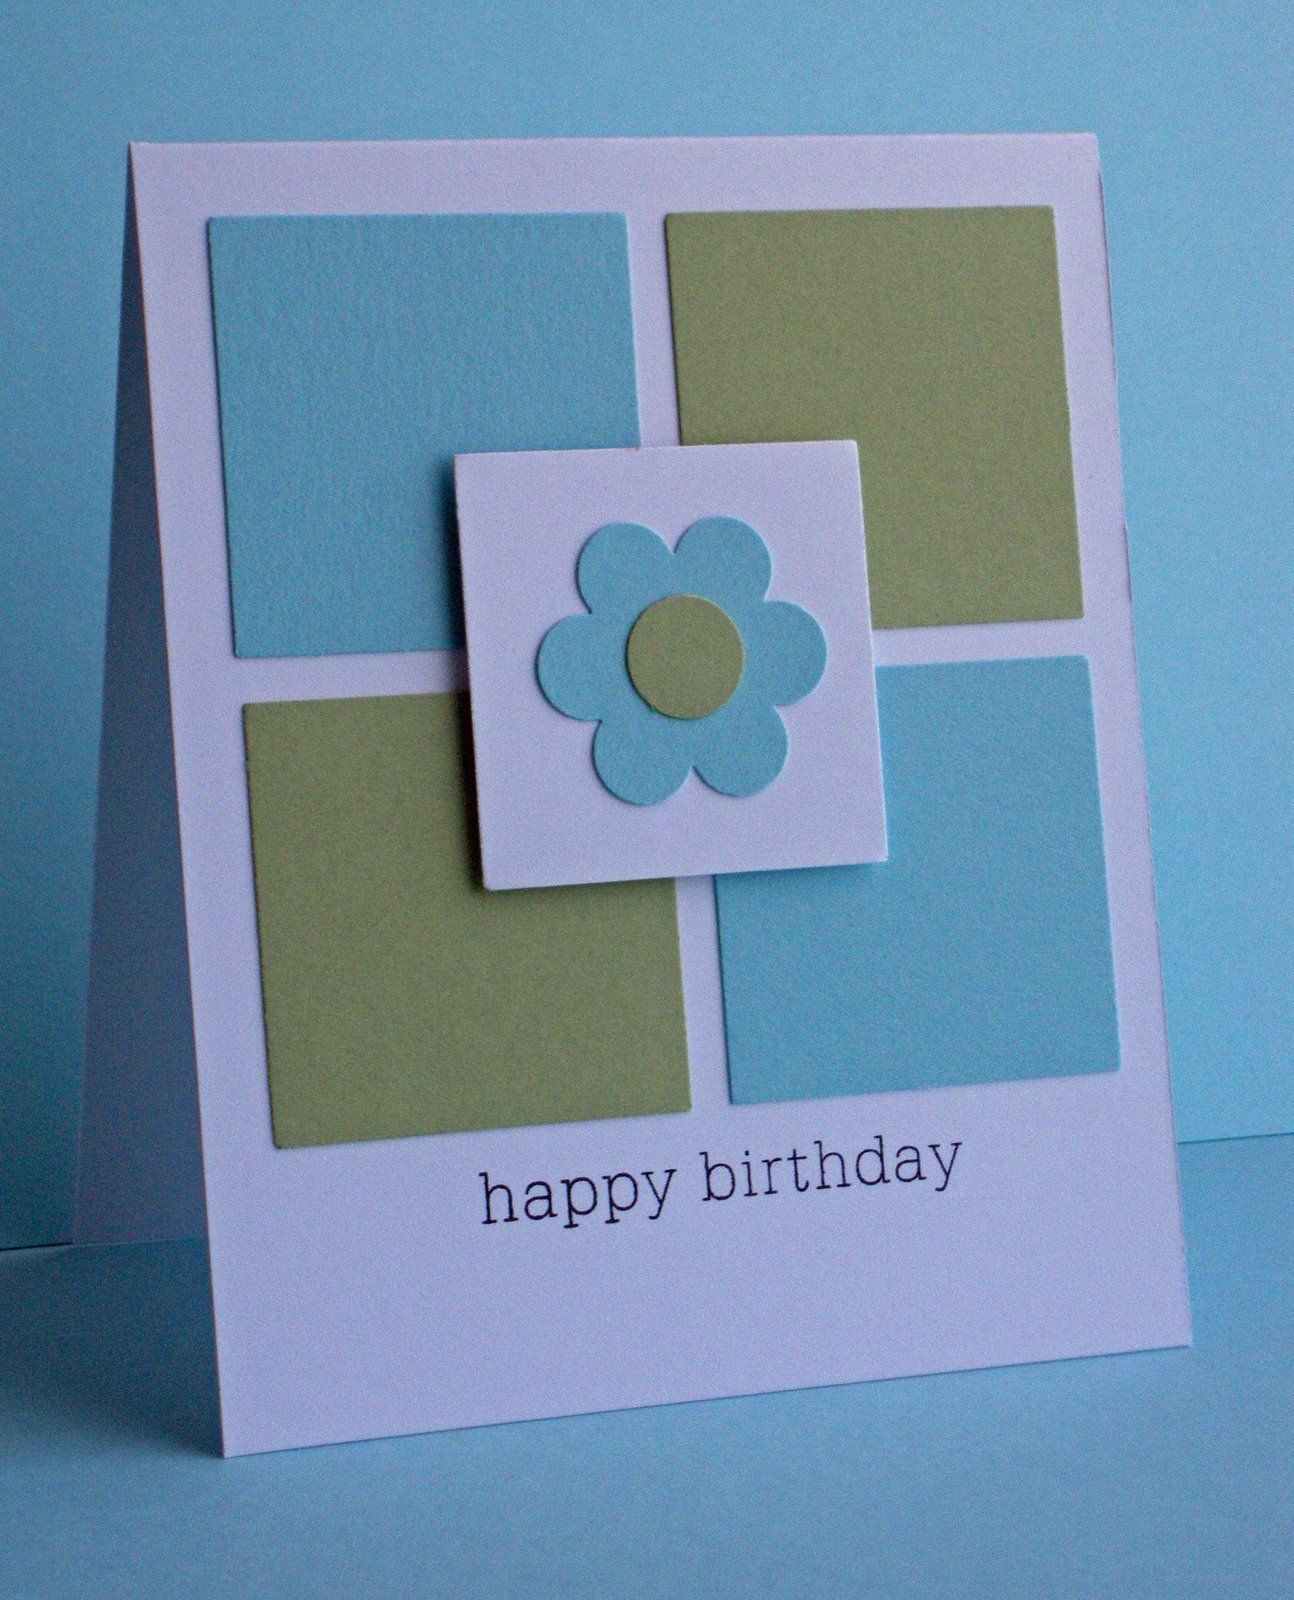 Pin by gina giggey on cricut pinterest cards card ideas and